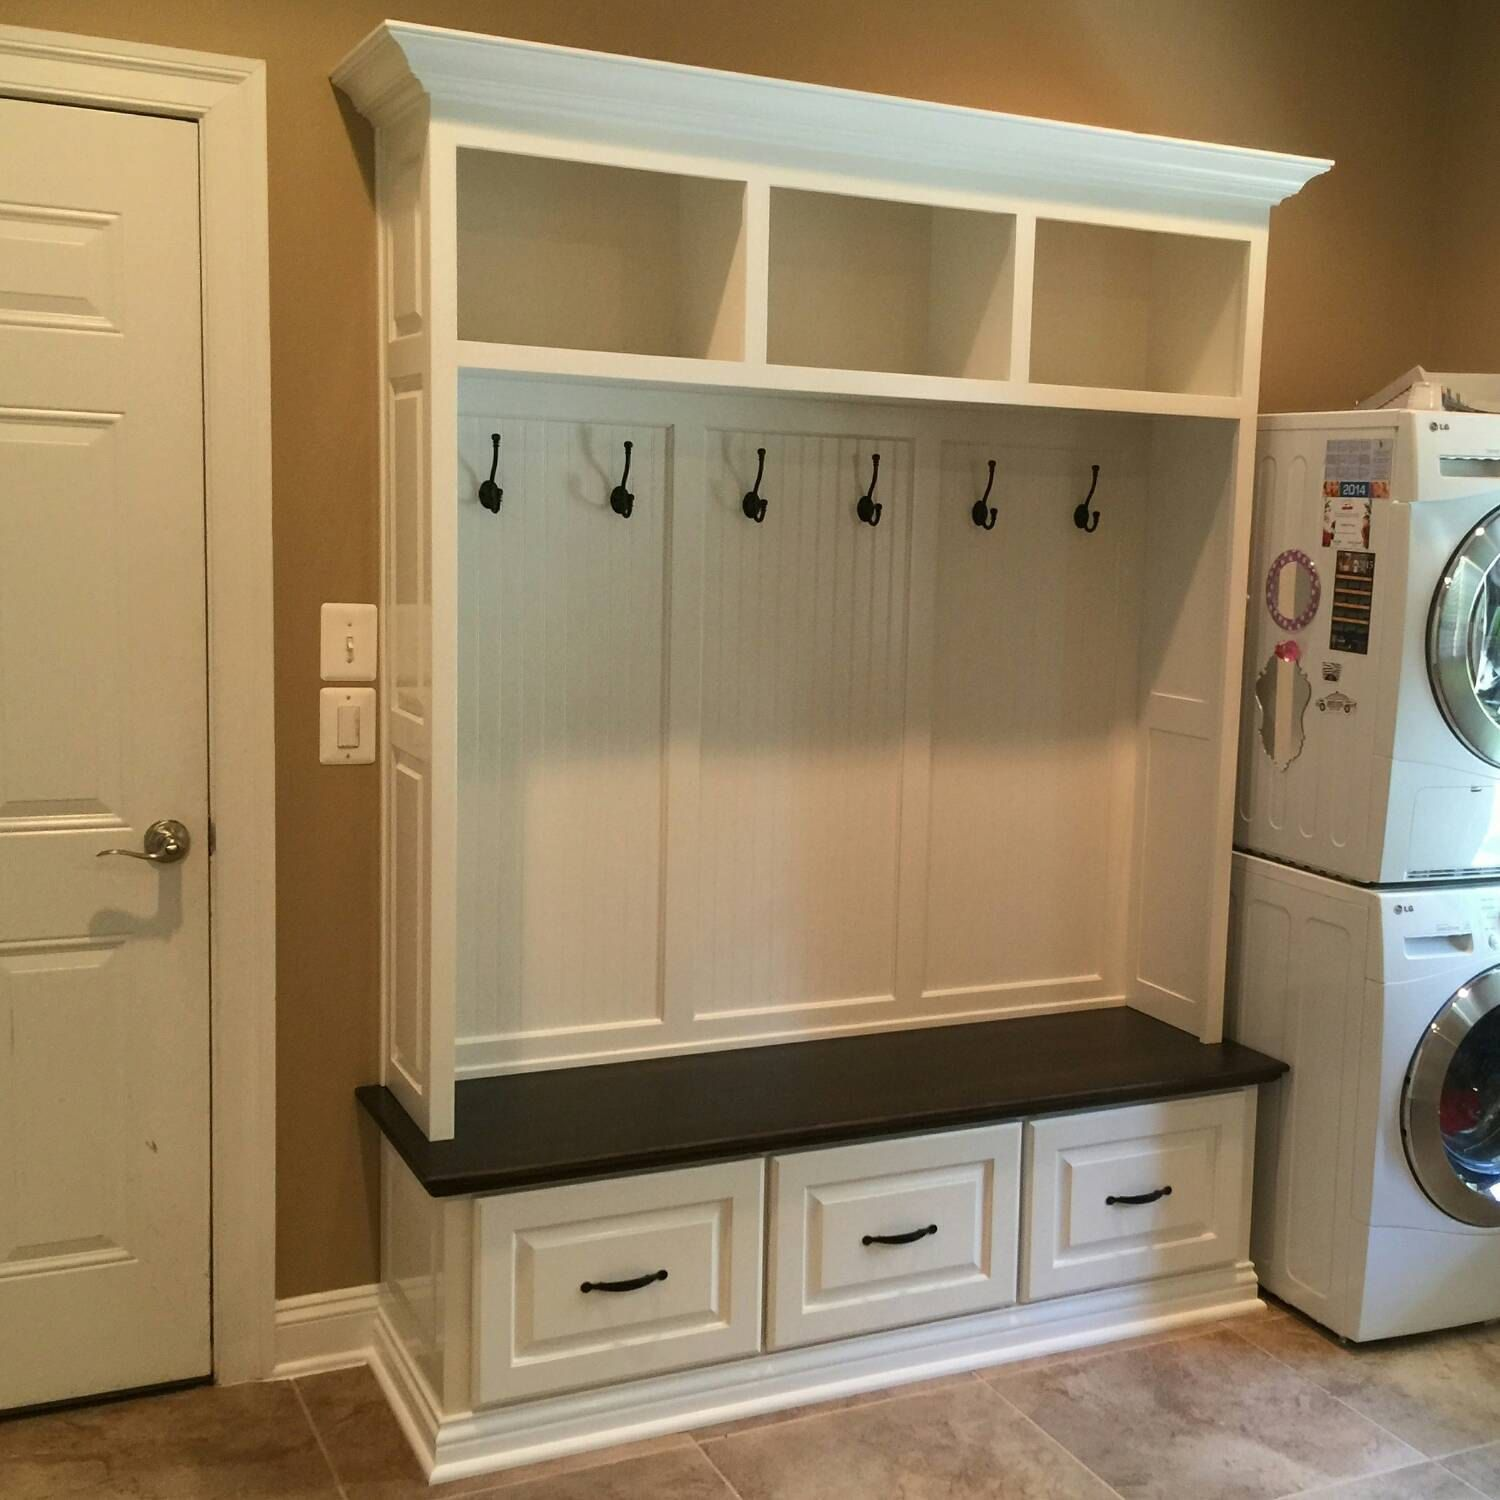 Mudroom Storage For Sale : Mudroom lockers bench storage furniture cubbies hall tree